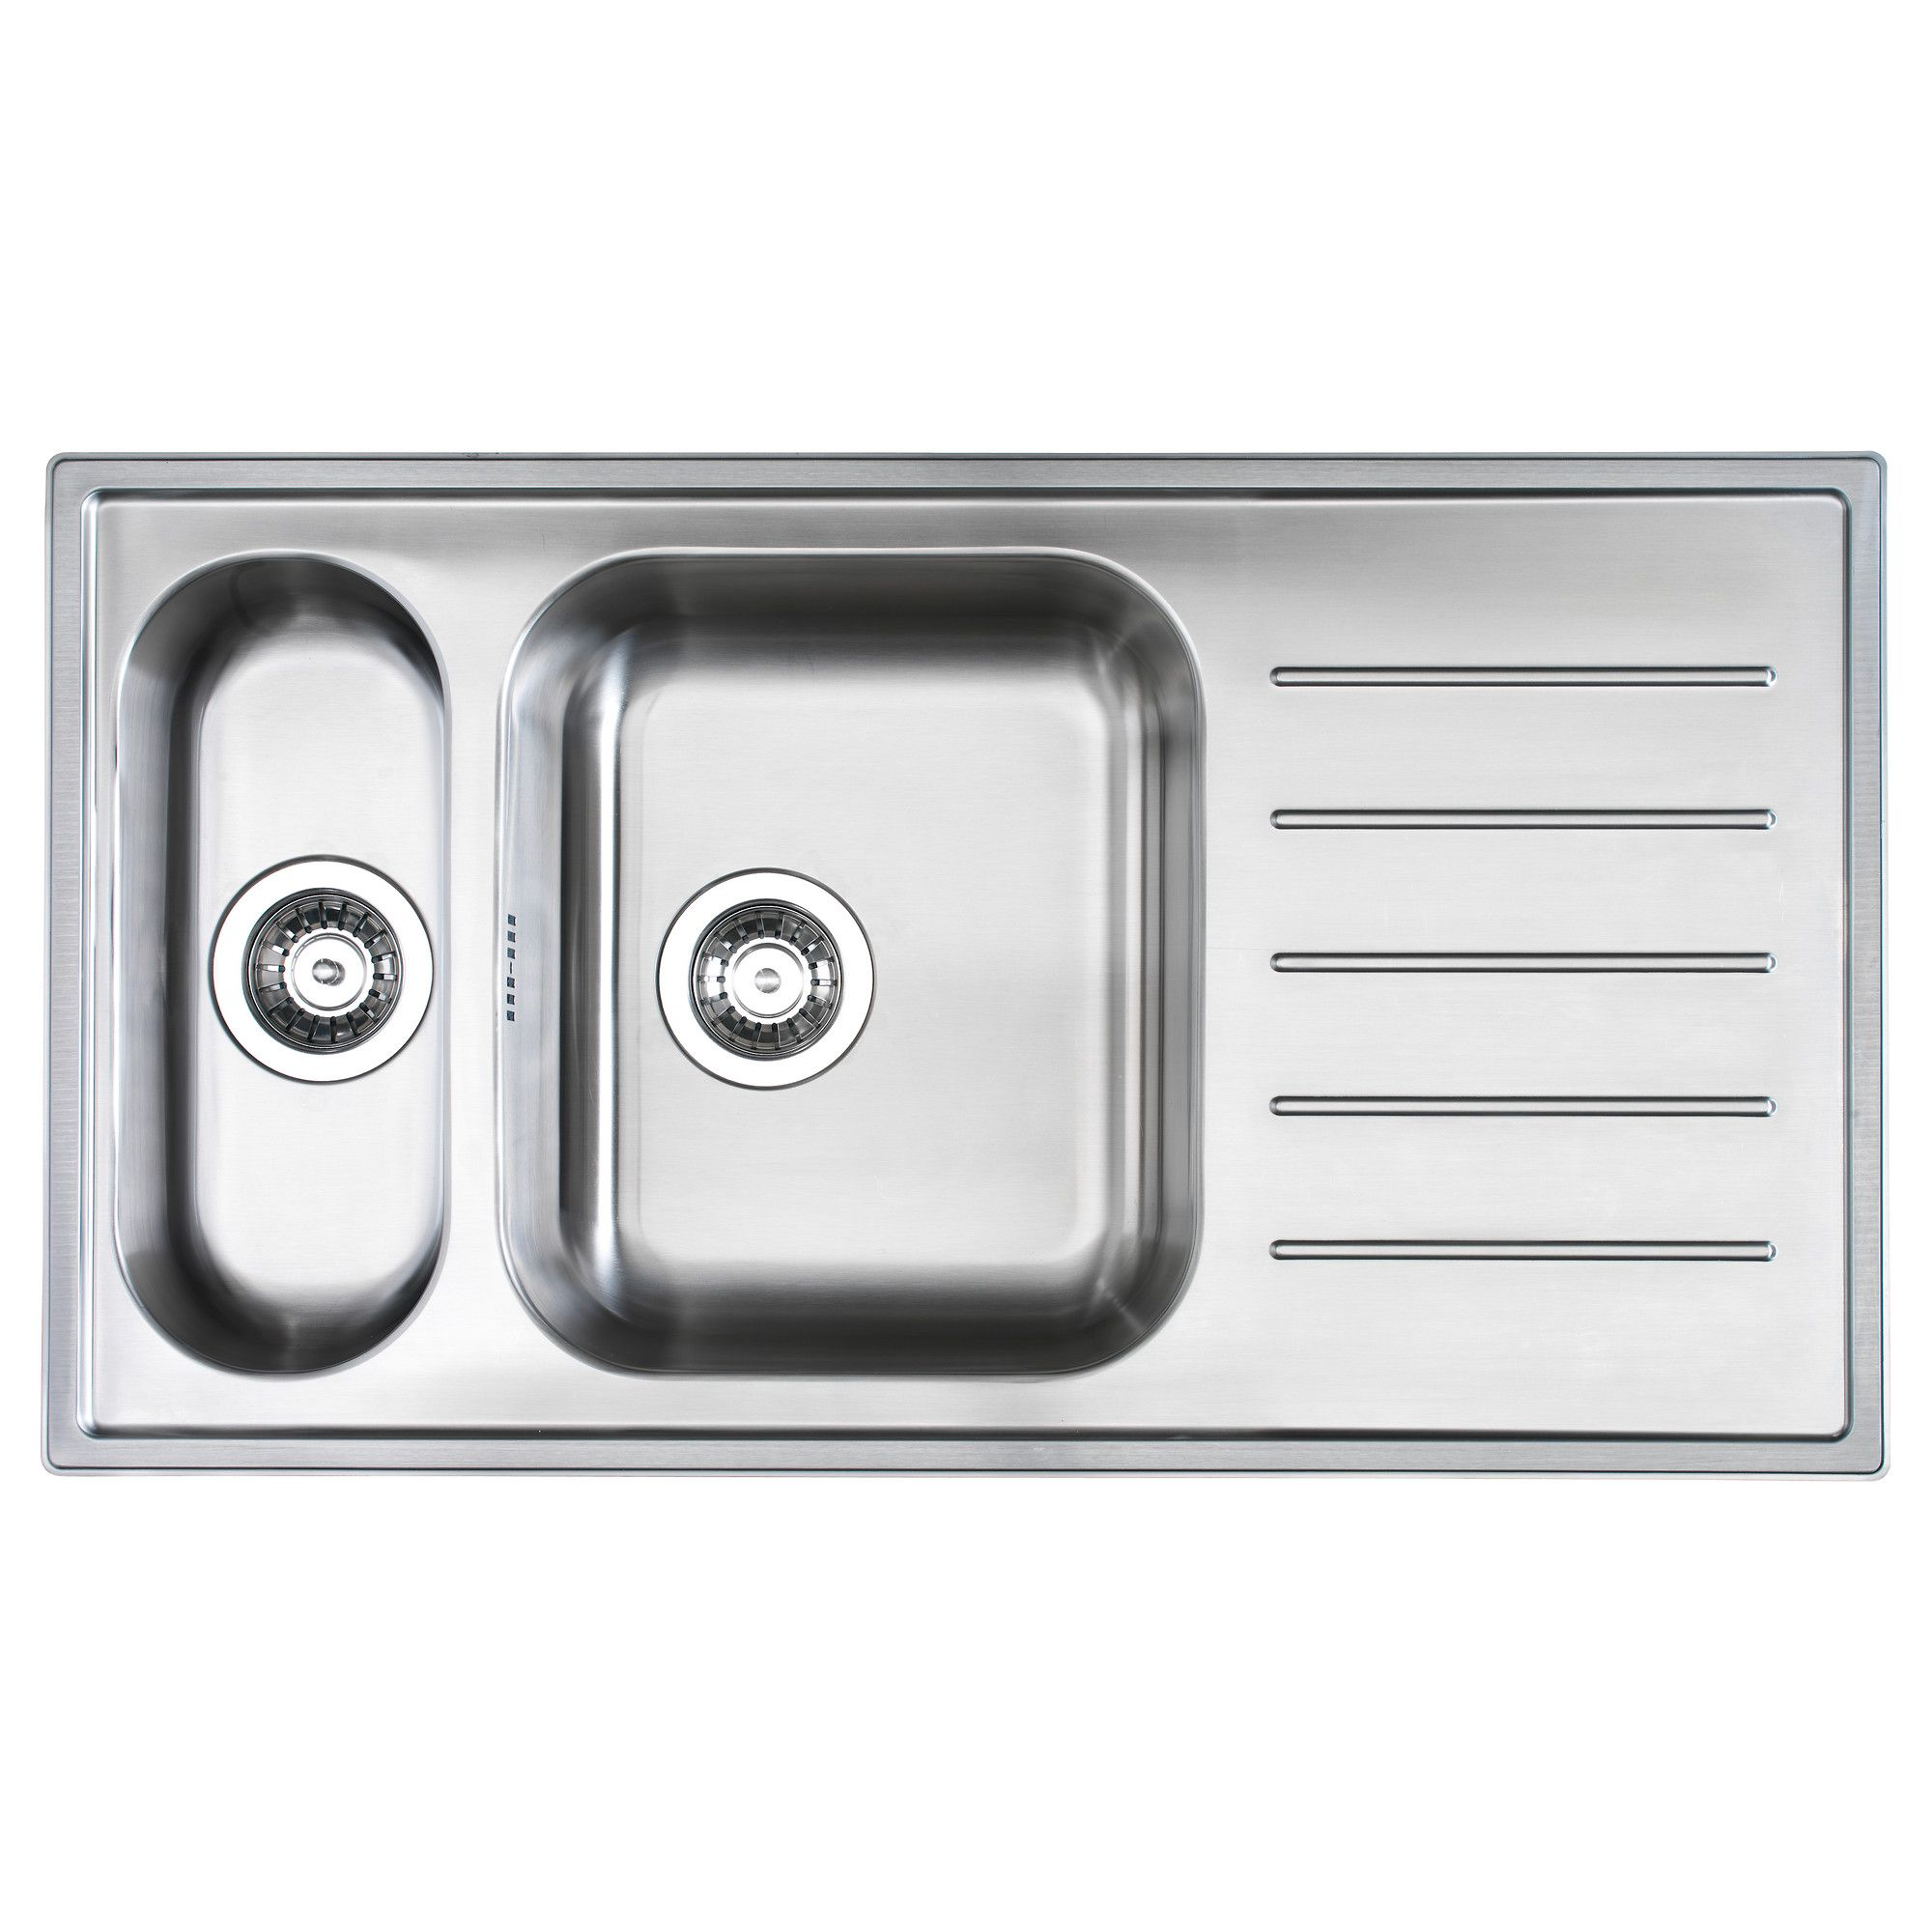 boholmen 1 1 2 bowl inset sink with drainer   ikea galley possibility with drainer boholmen 1 1 2 bowl inset sink with drainer   ikea galley      rh   pinterest com